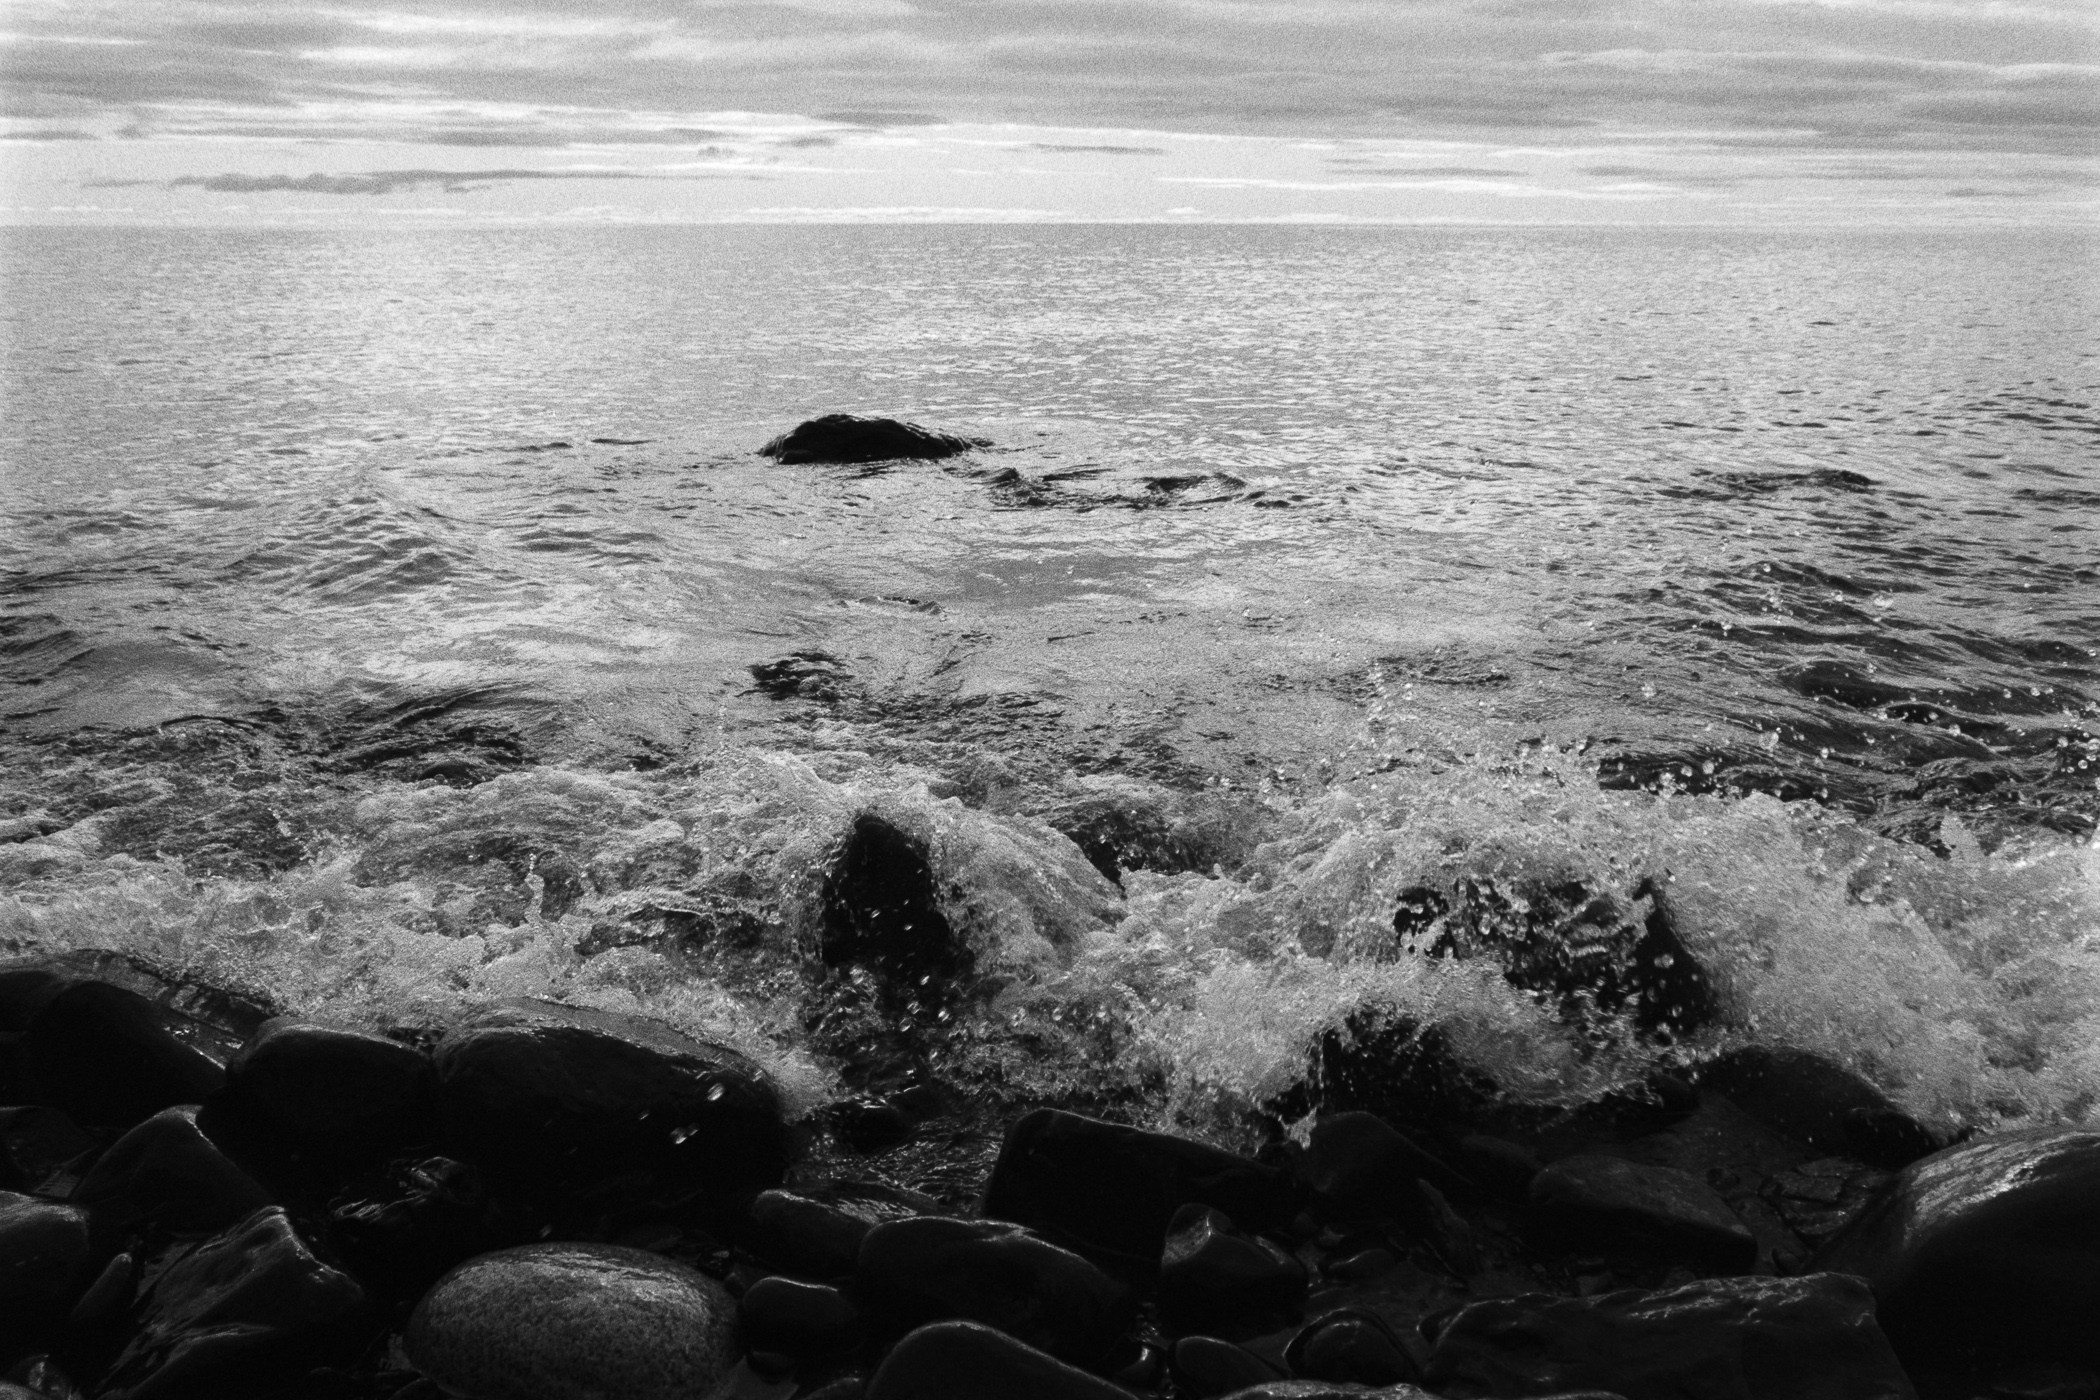 Lake Superior North Shore, waves, Ultrafine Xtreme 400 B&W film, Nikon FE 35mm camera